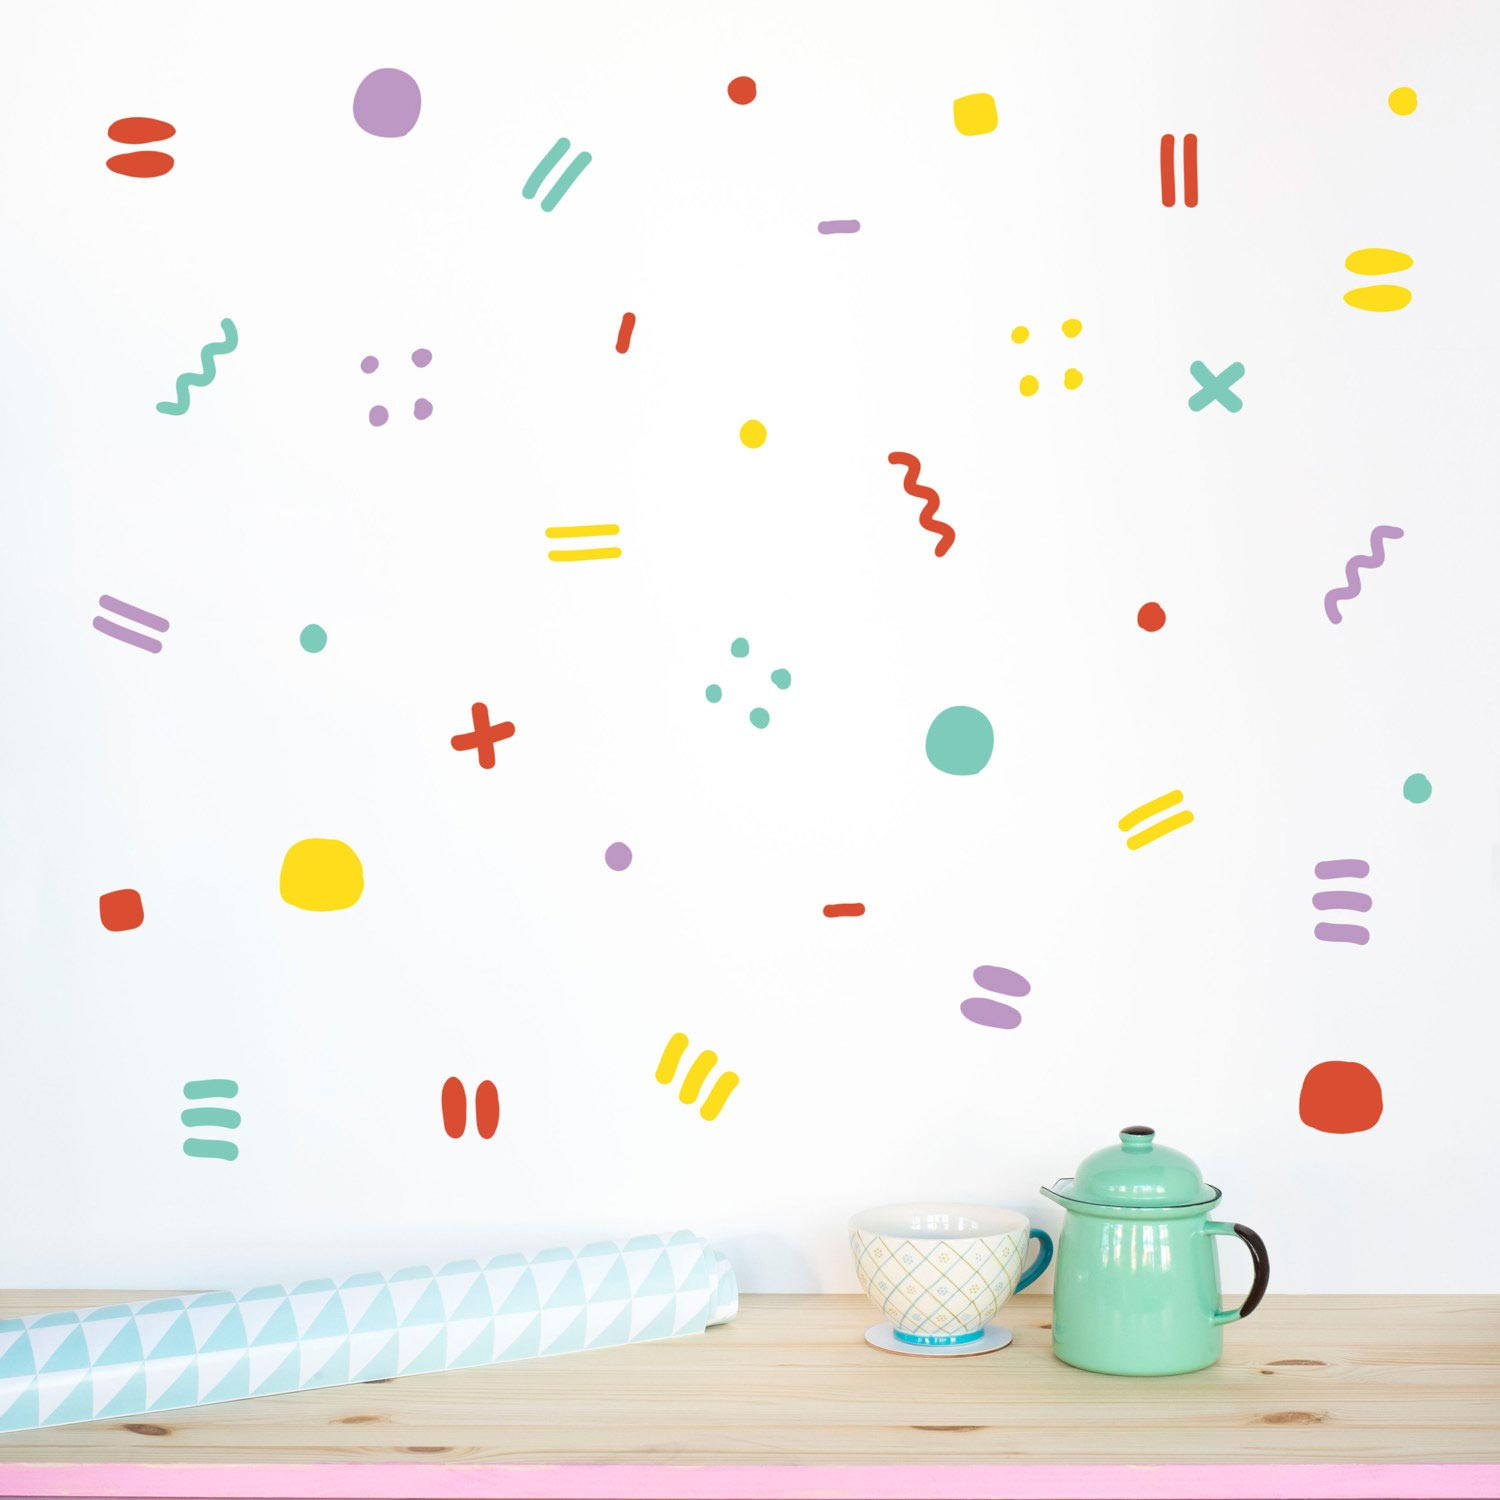 Happy Wall decal pattern